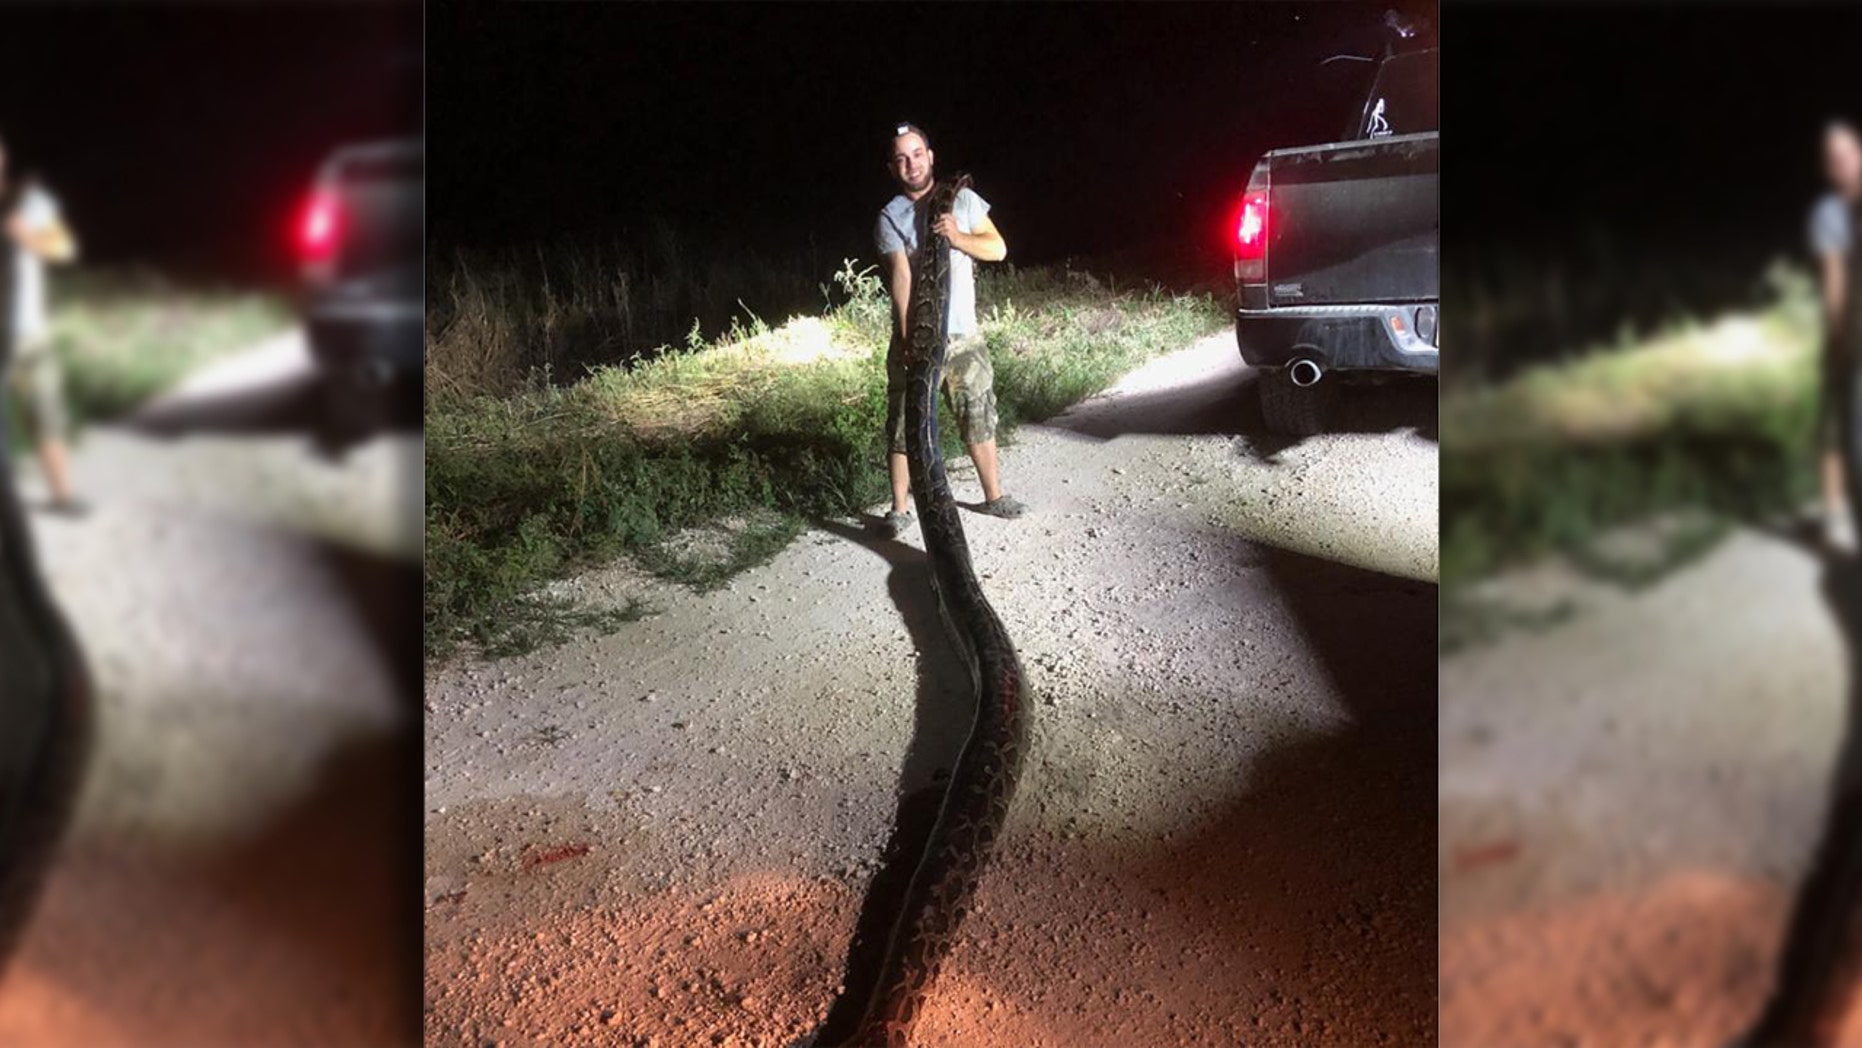 The python weighed 120 pounds, according to the agency.